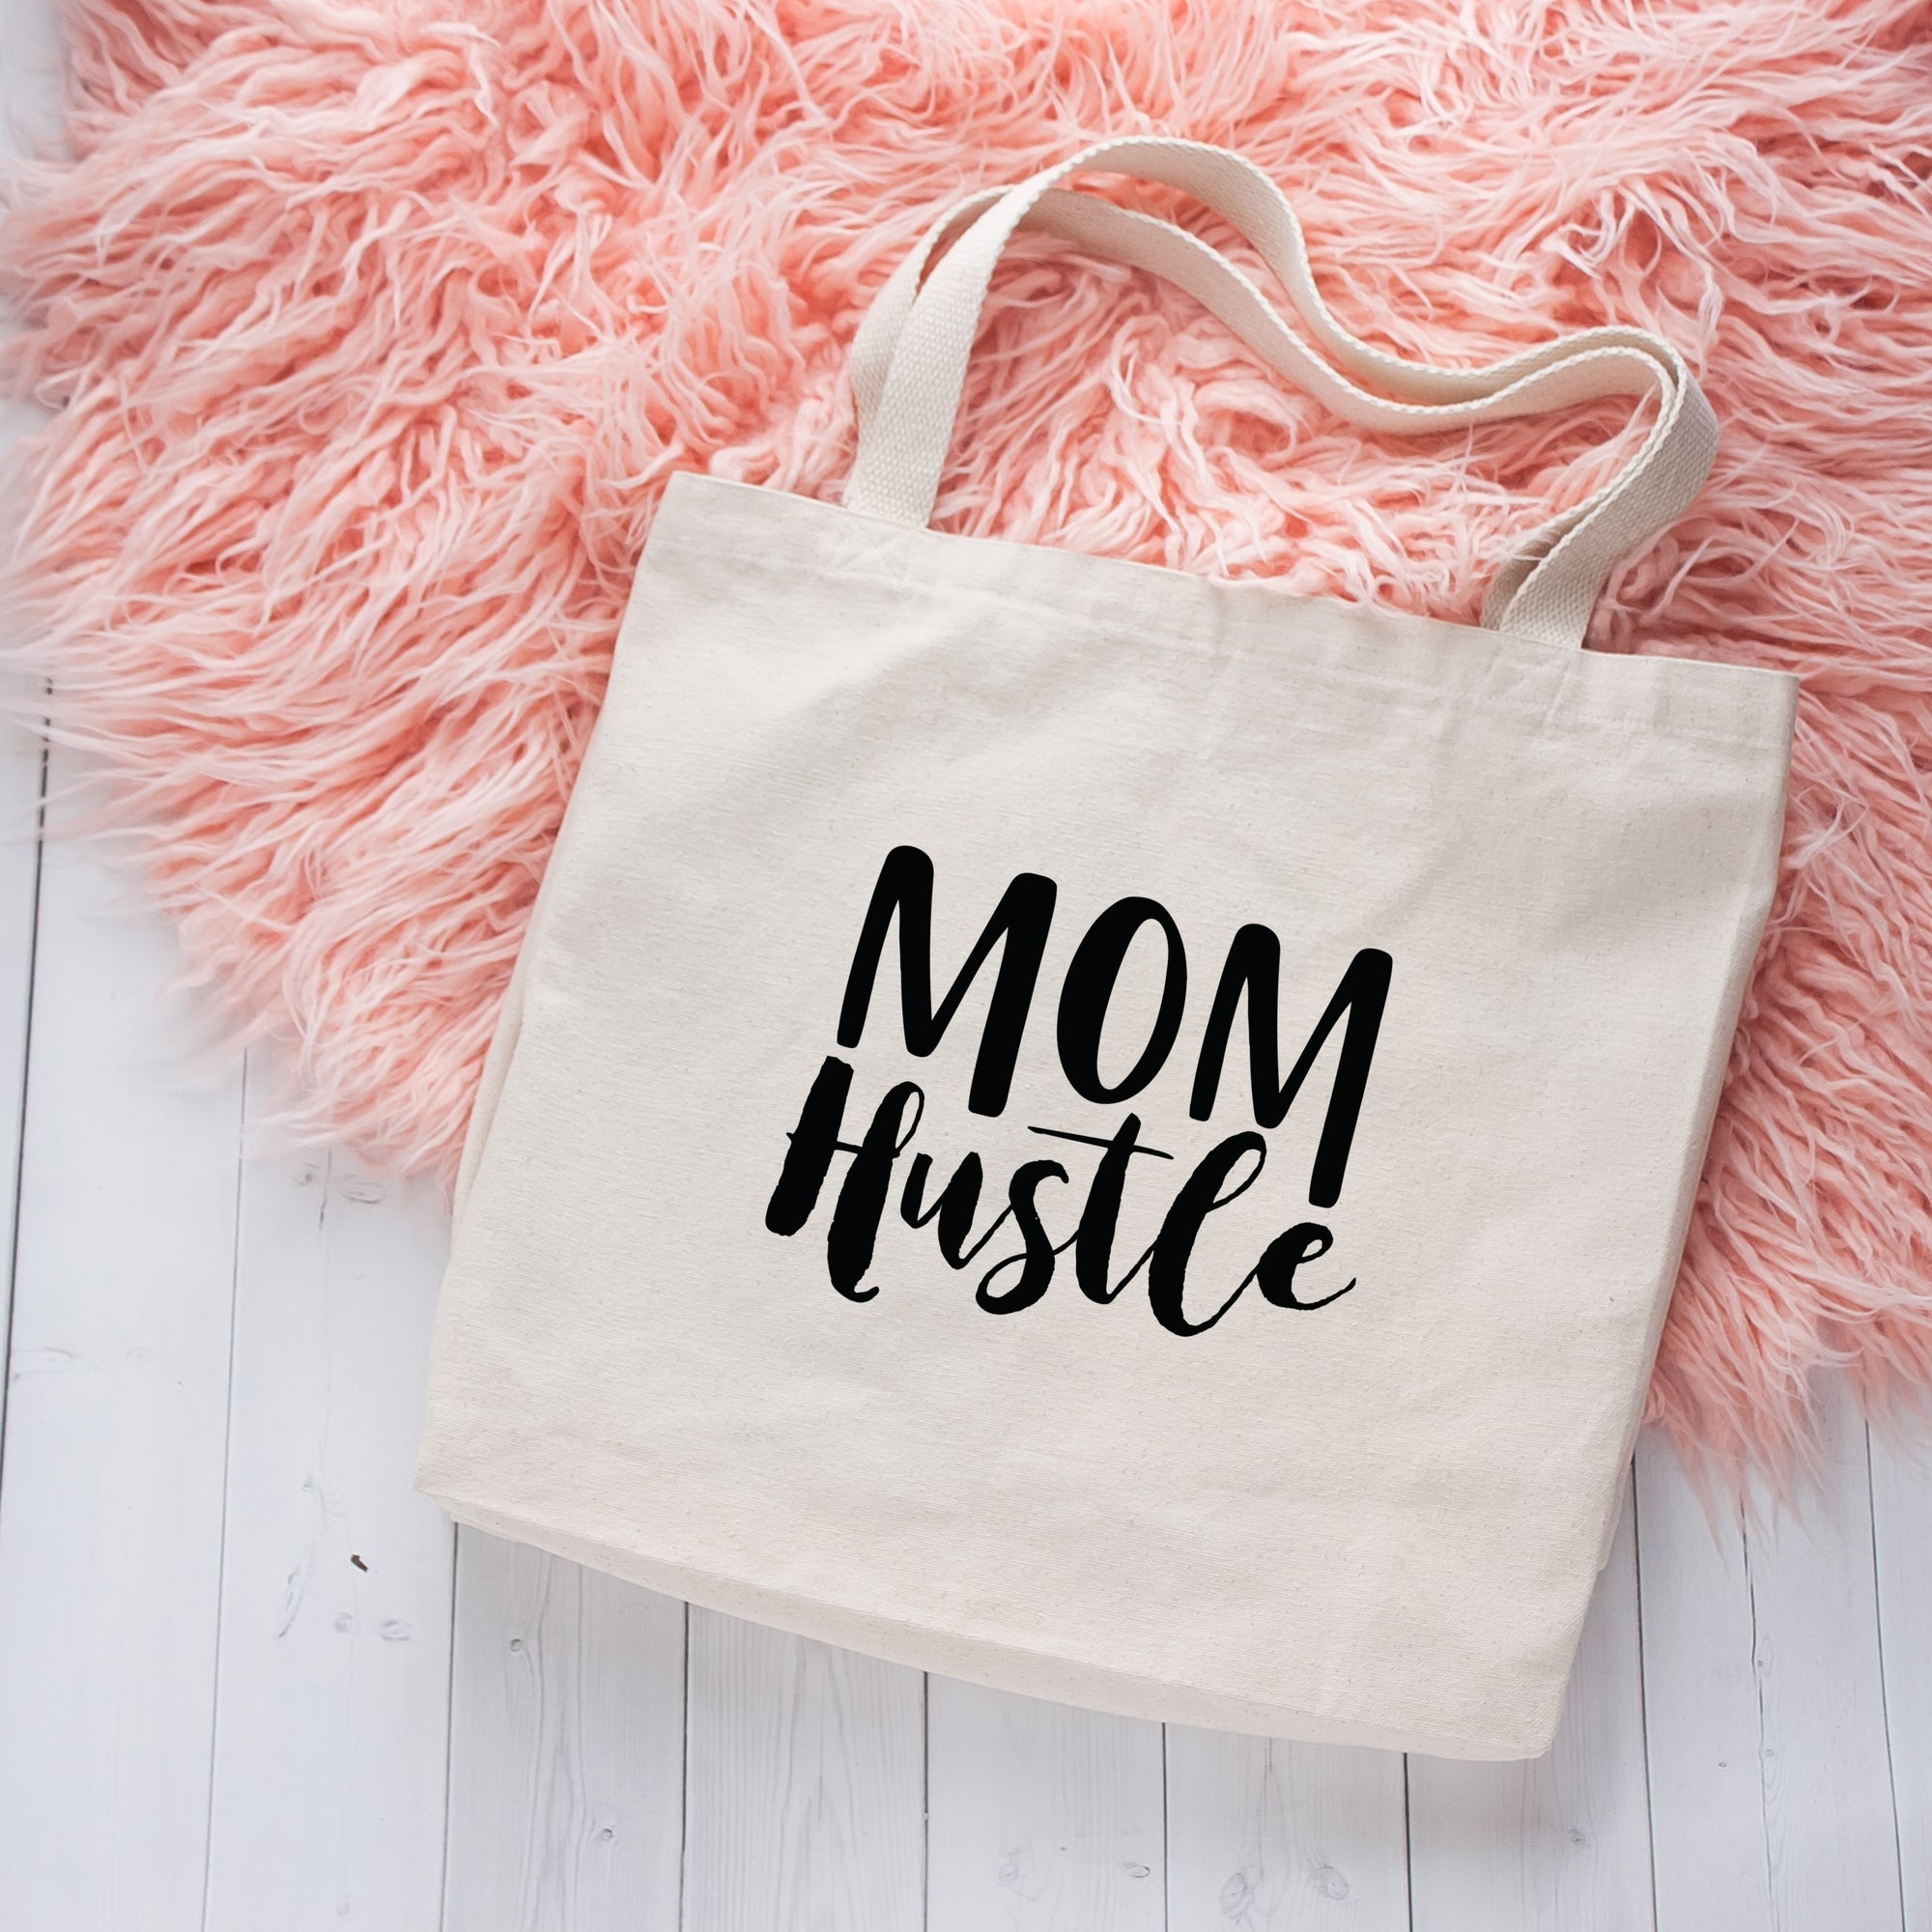 Mom Hustle Tote Bag